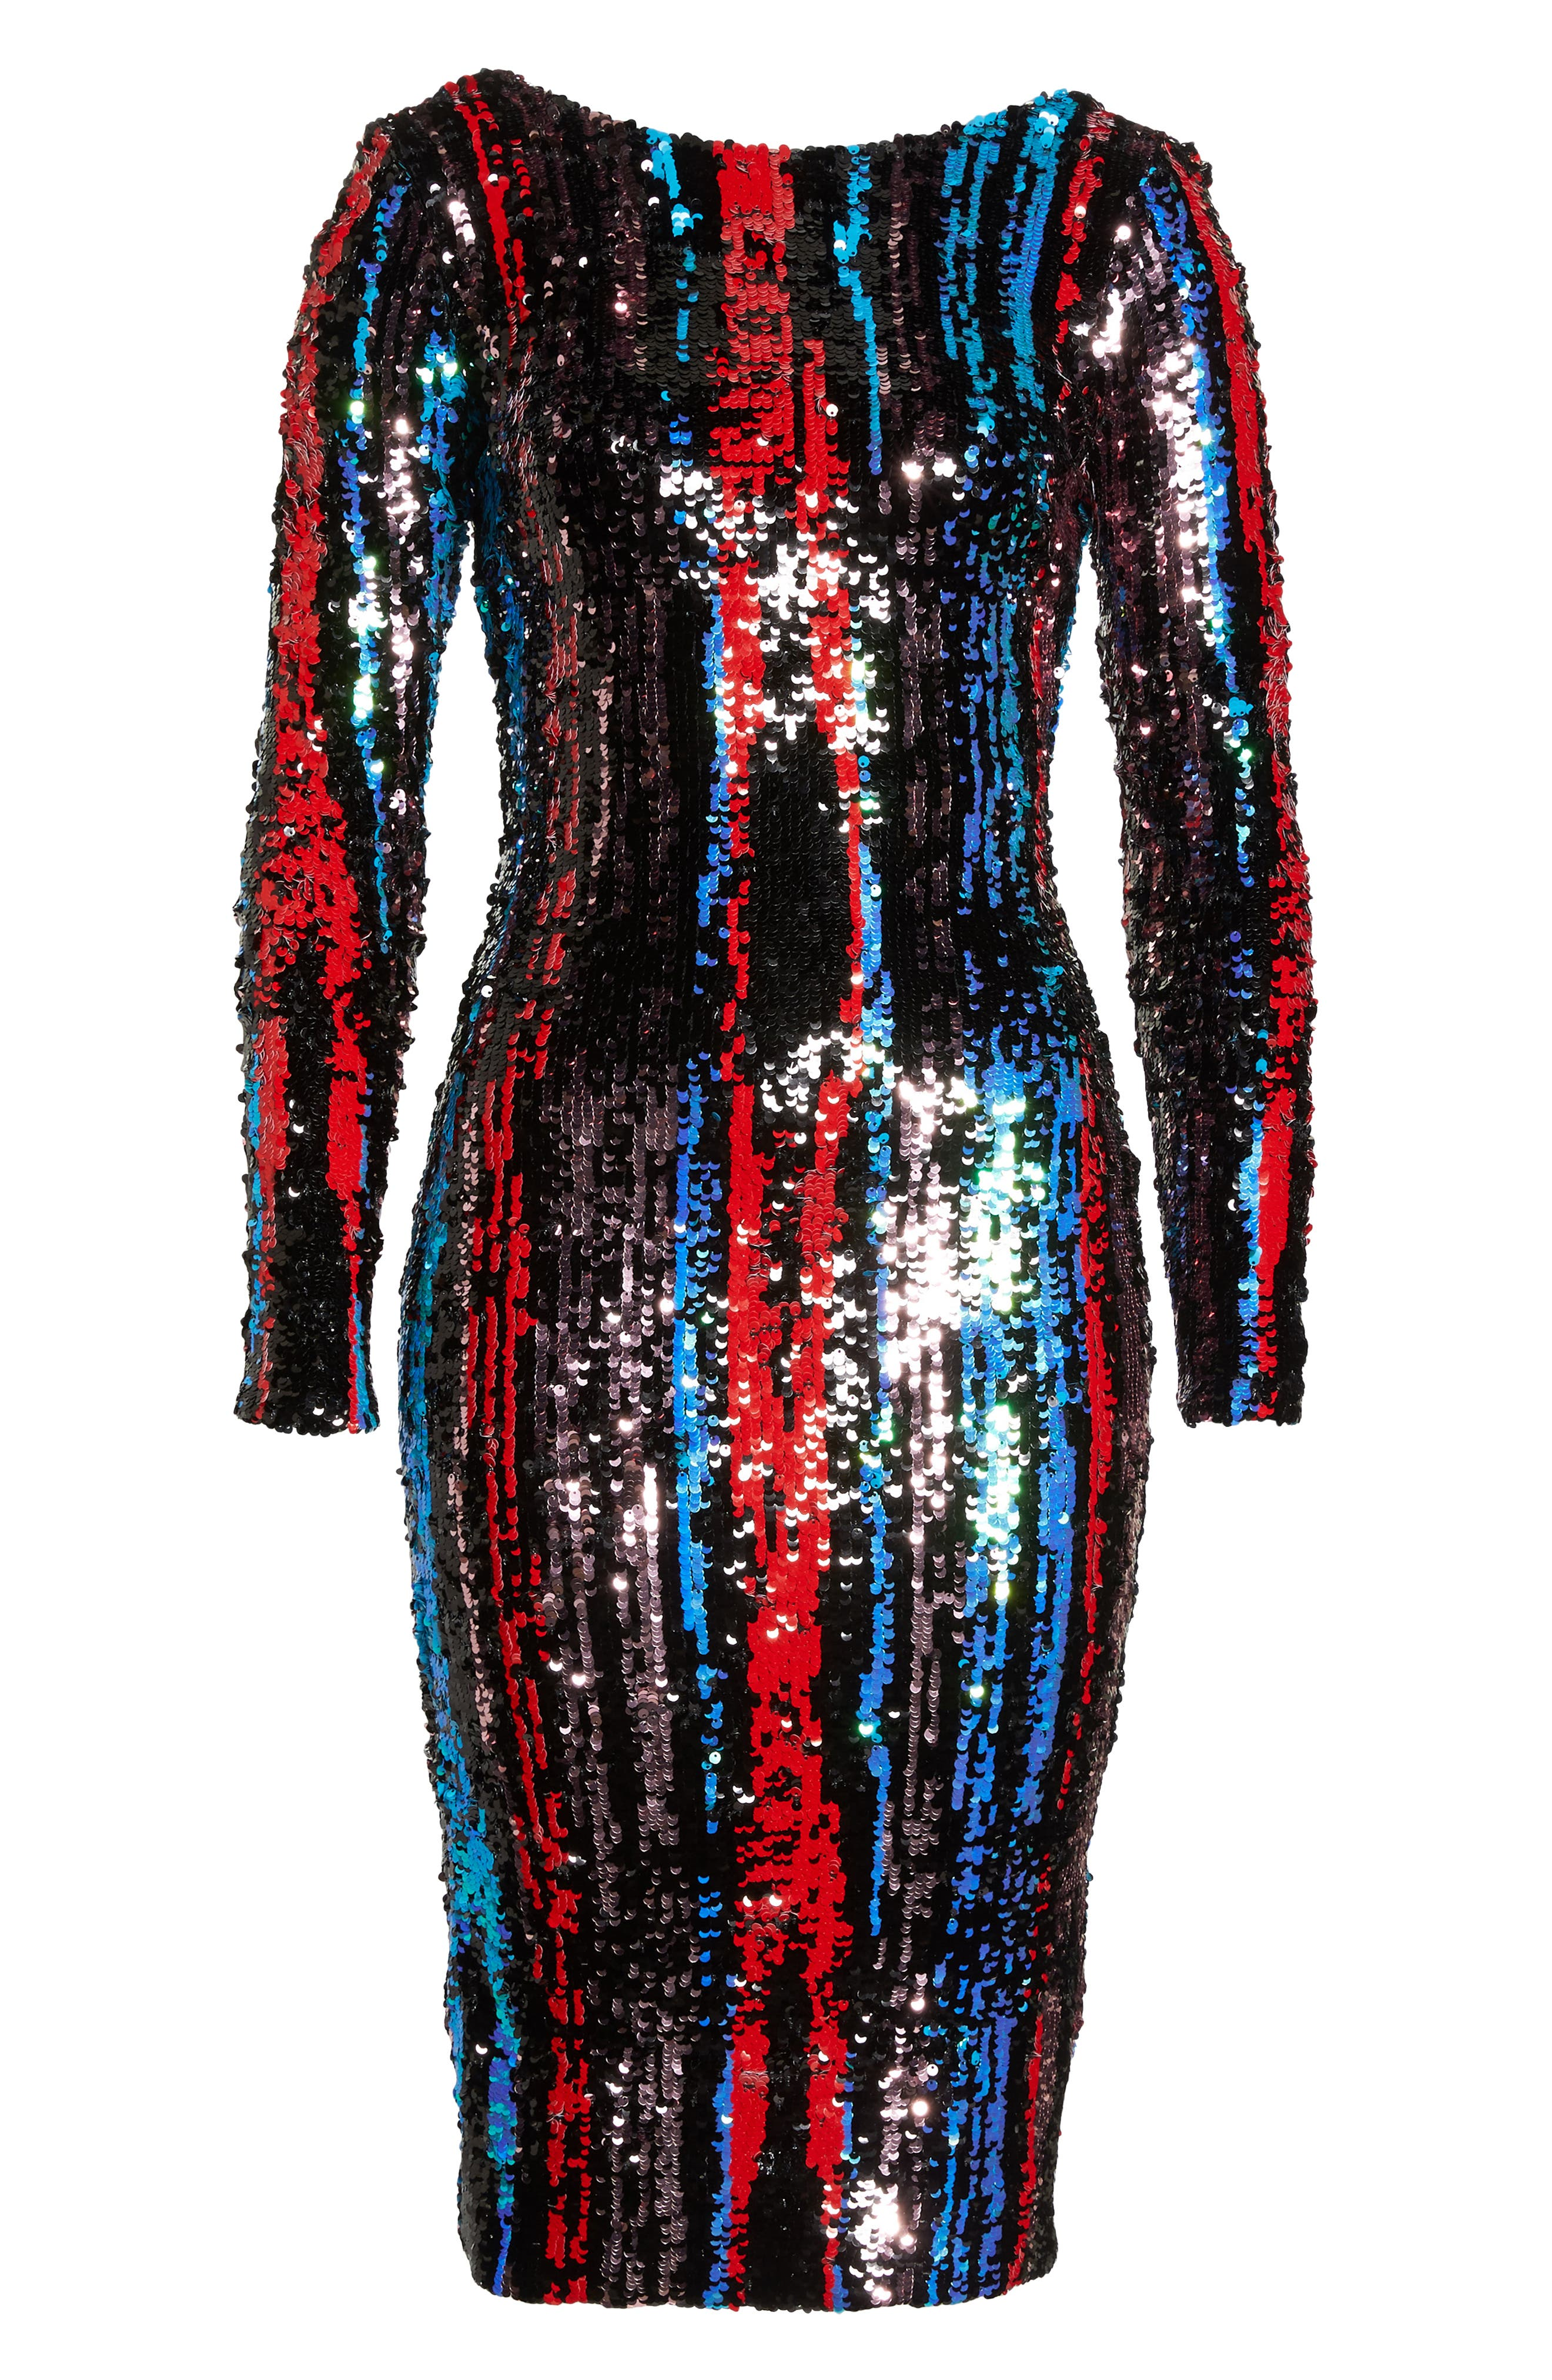 Emery Scoop Back Dress,                             Alternate thumbnail 9, color,                             ROUGE RED MULTI